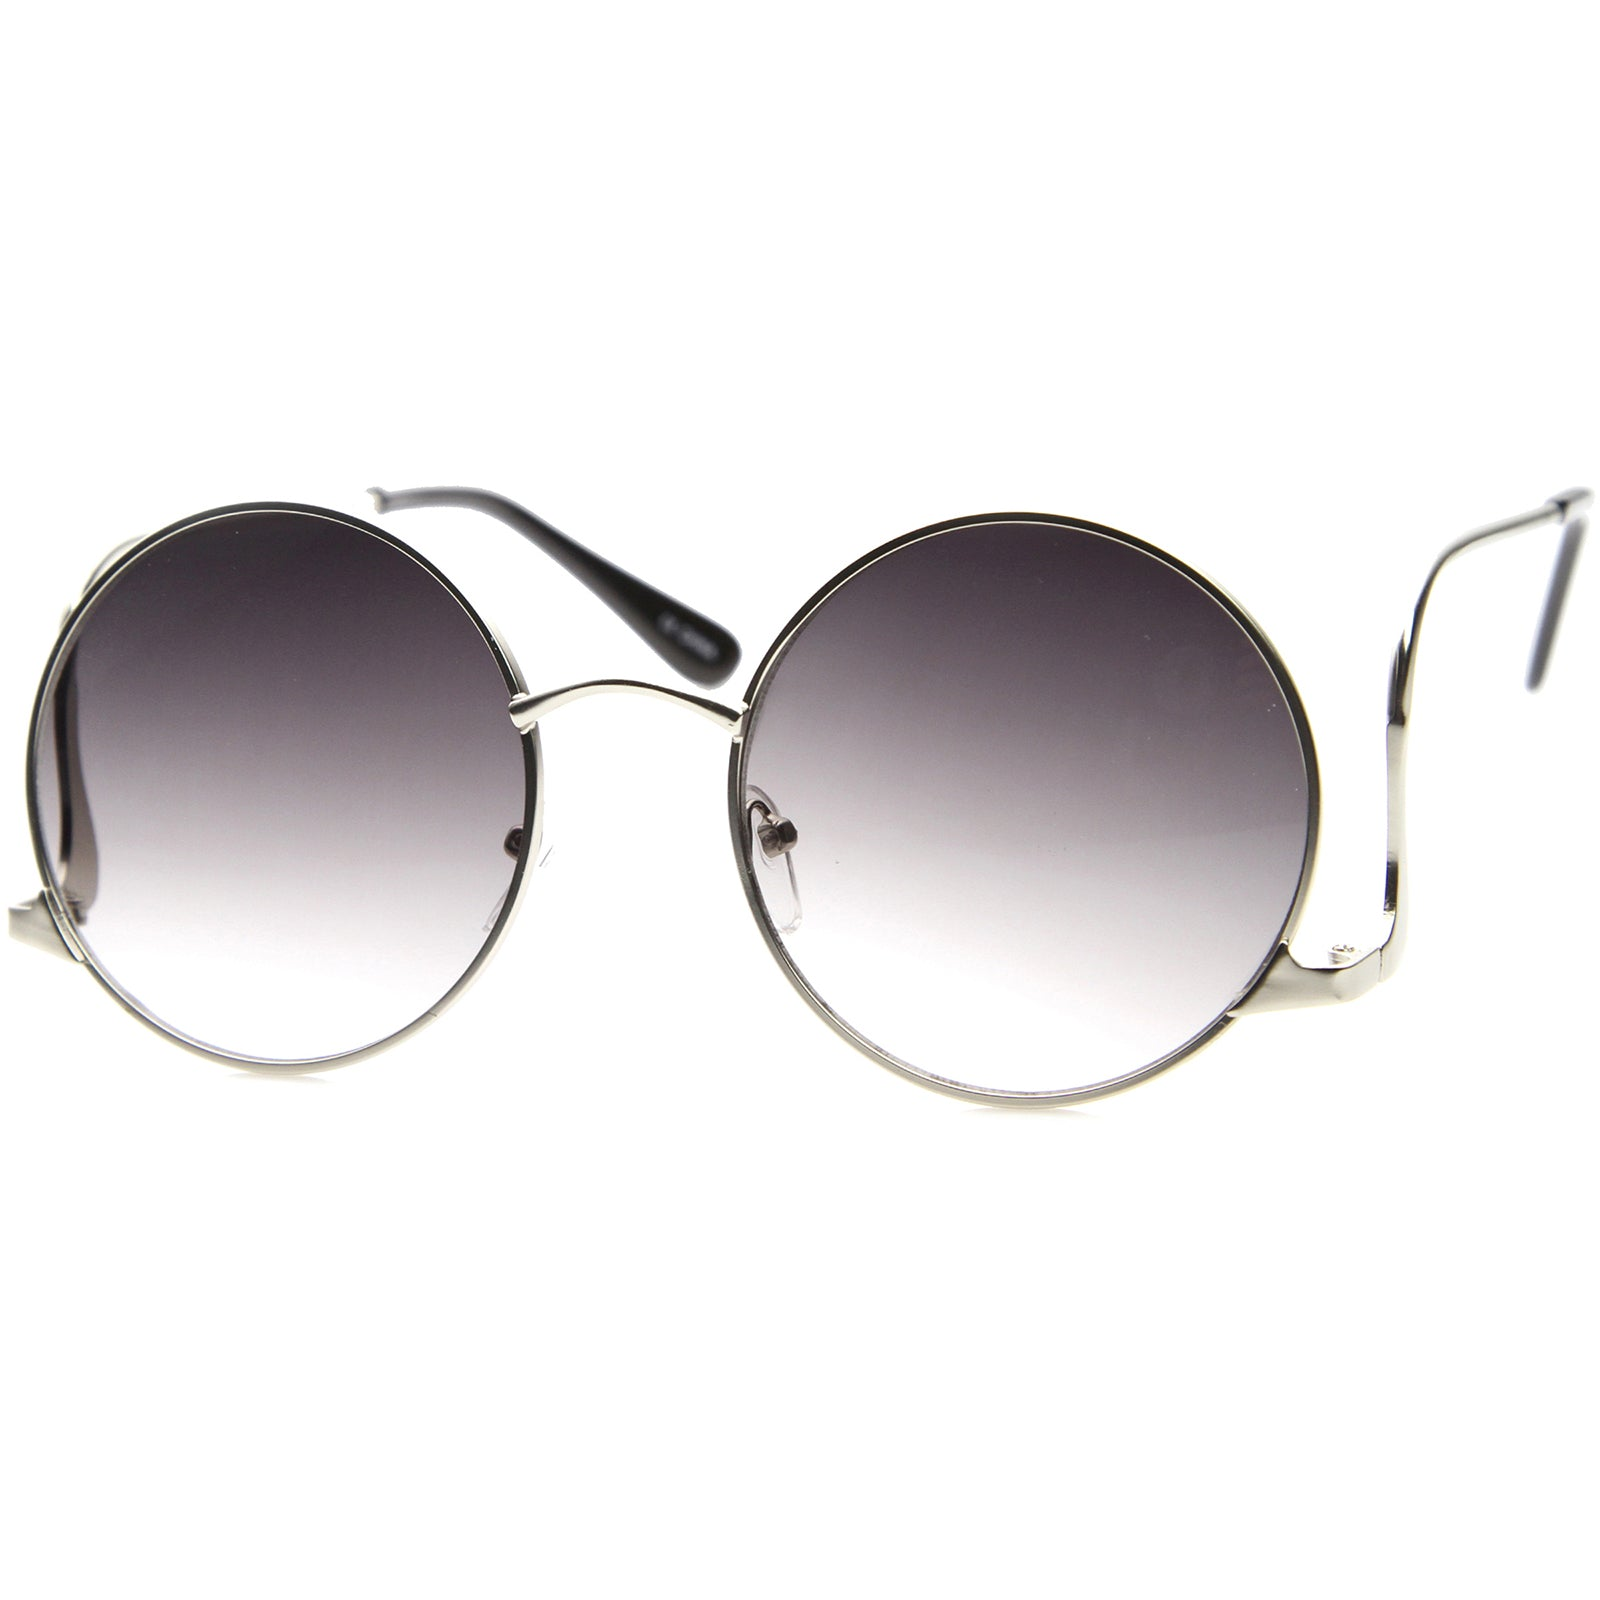 Mens Metal Round Sunglasses With UV400 Protected Gradient Lens - sunglass.la - 2